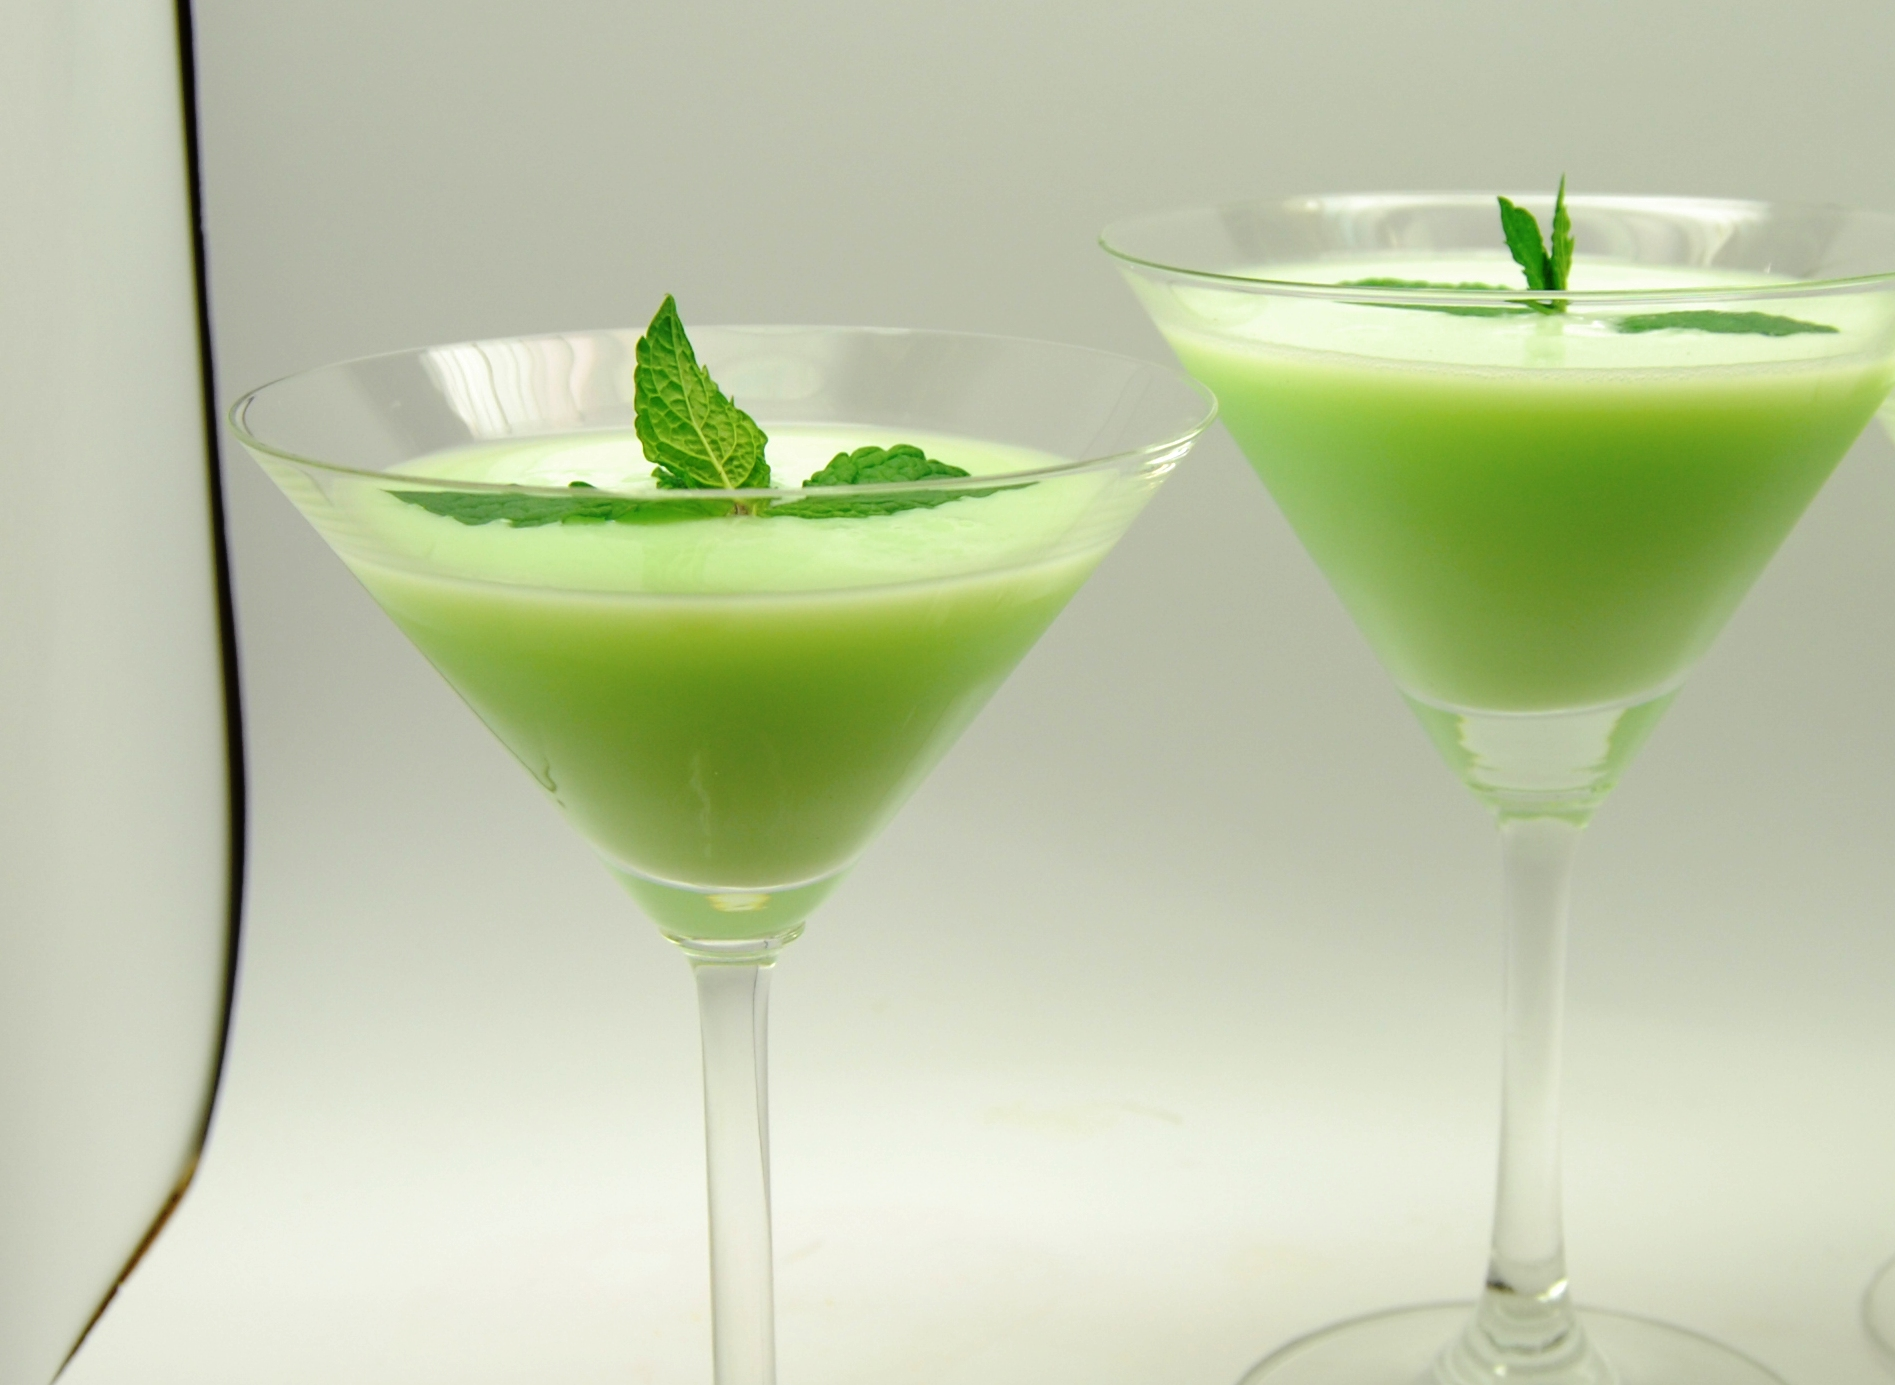 10 Drinks Better Than Green Beer